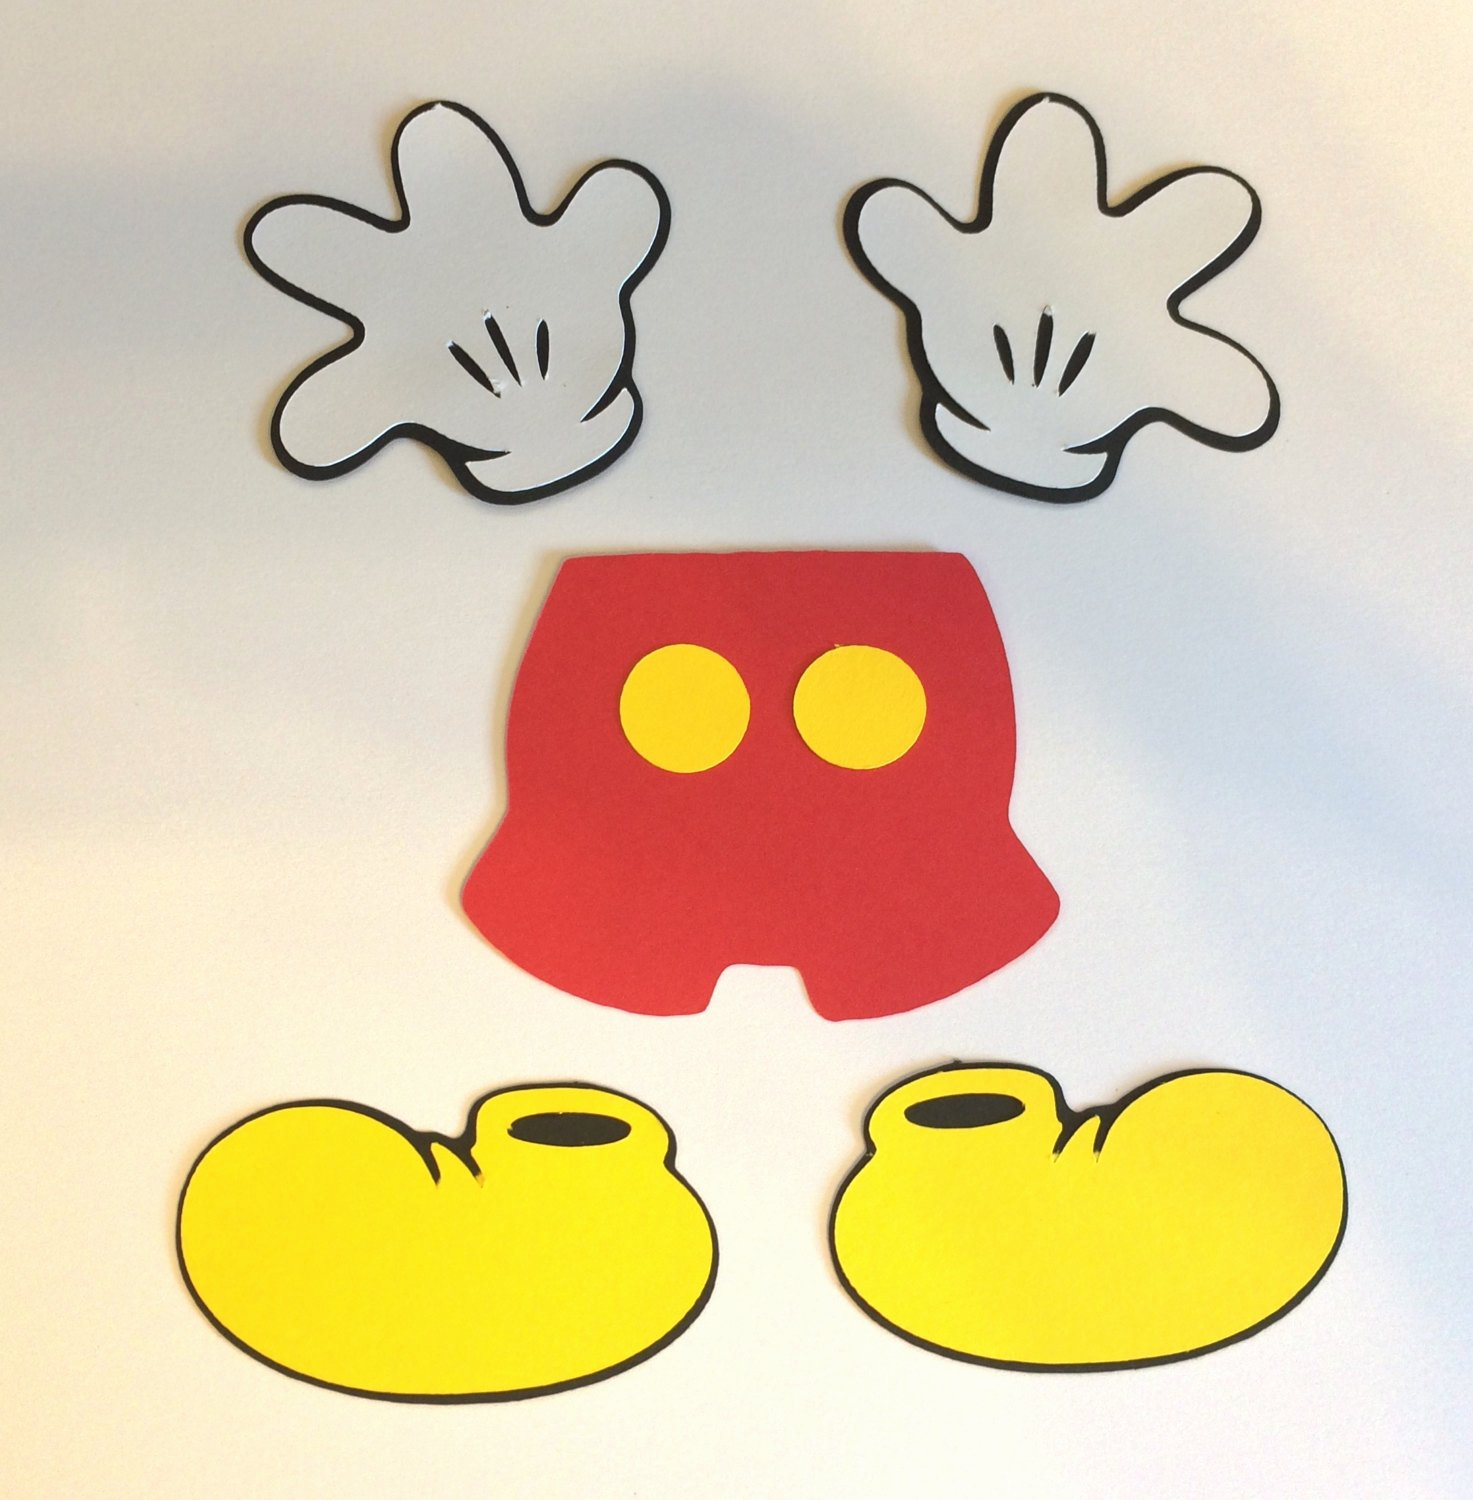 Mickey Mouse Pants Template Luxury Free Mickey Mouse Cut Out Download Free Clip Art Free